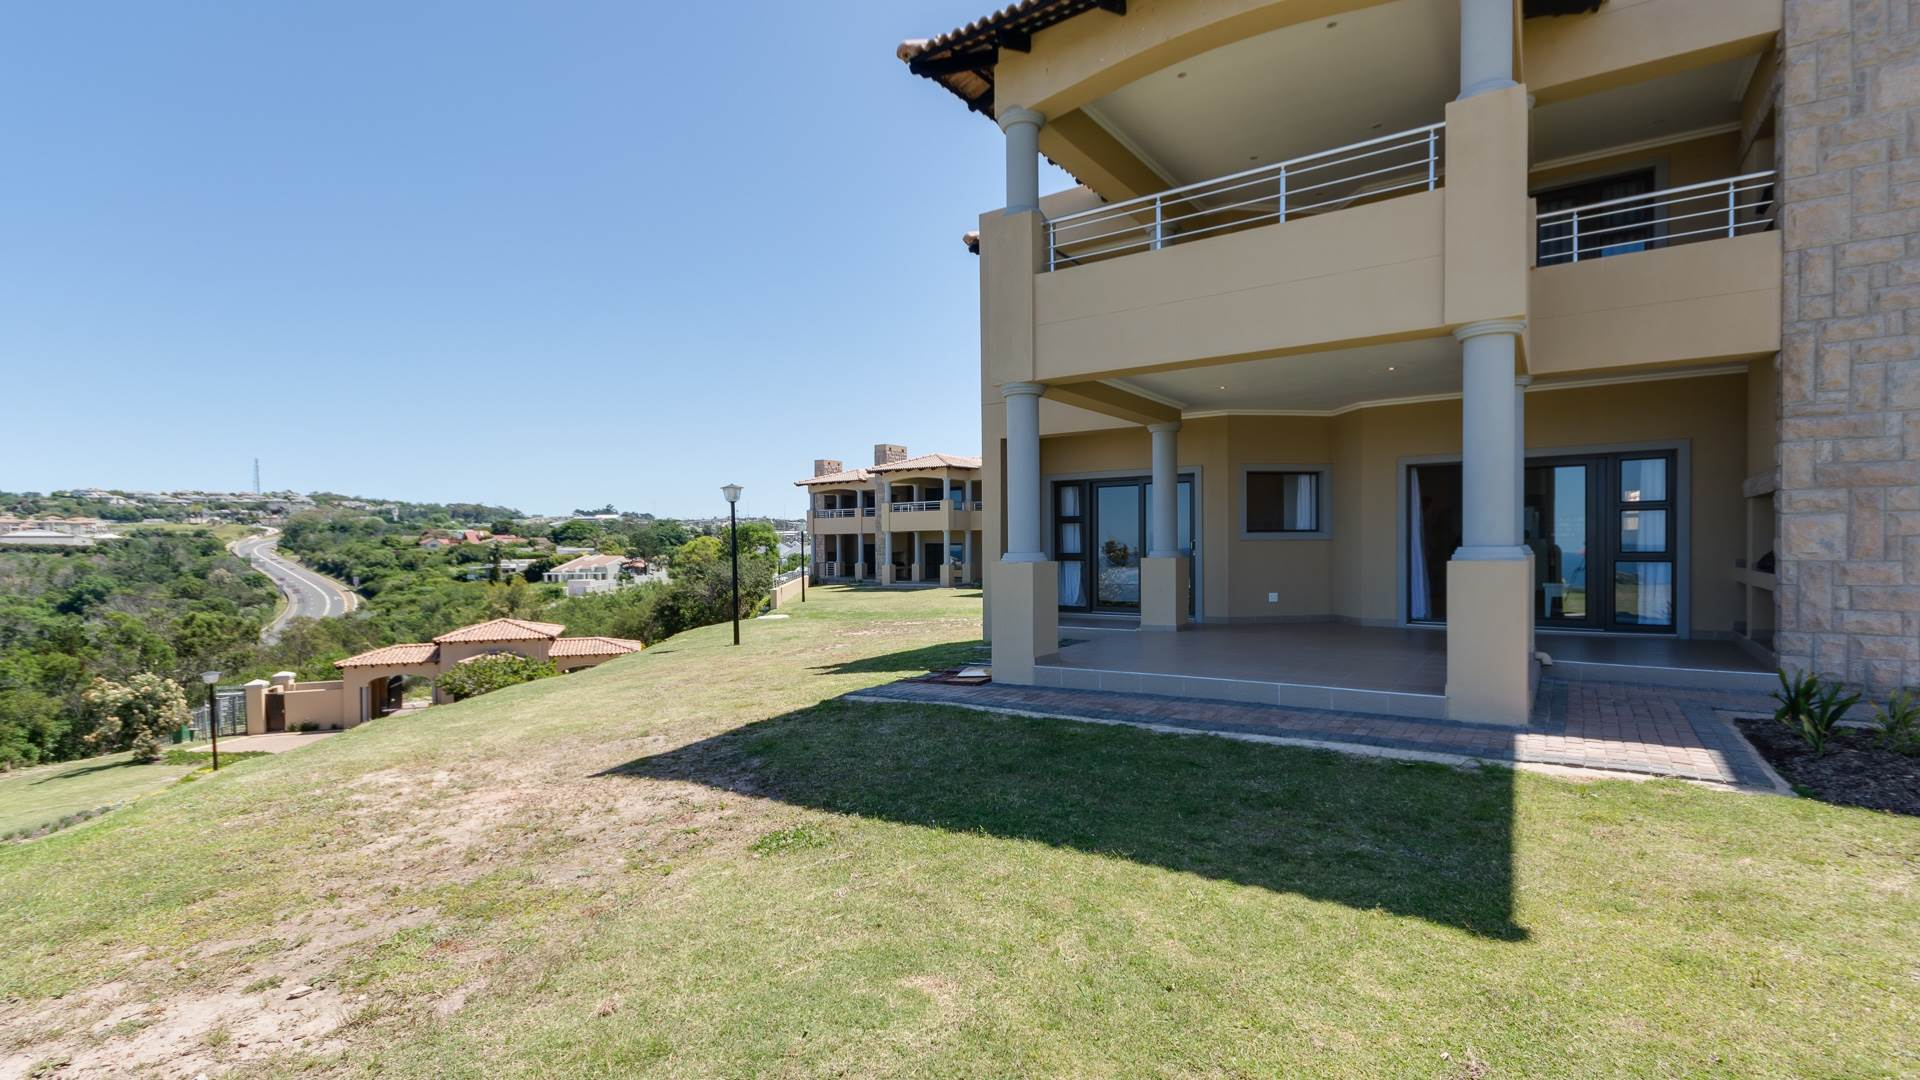 2 BedroomApartment For Sale In Plettenberg Bay